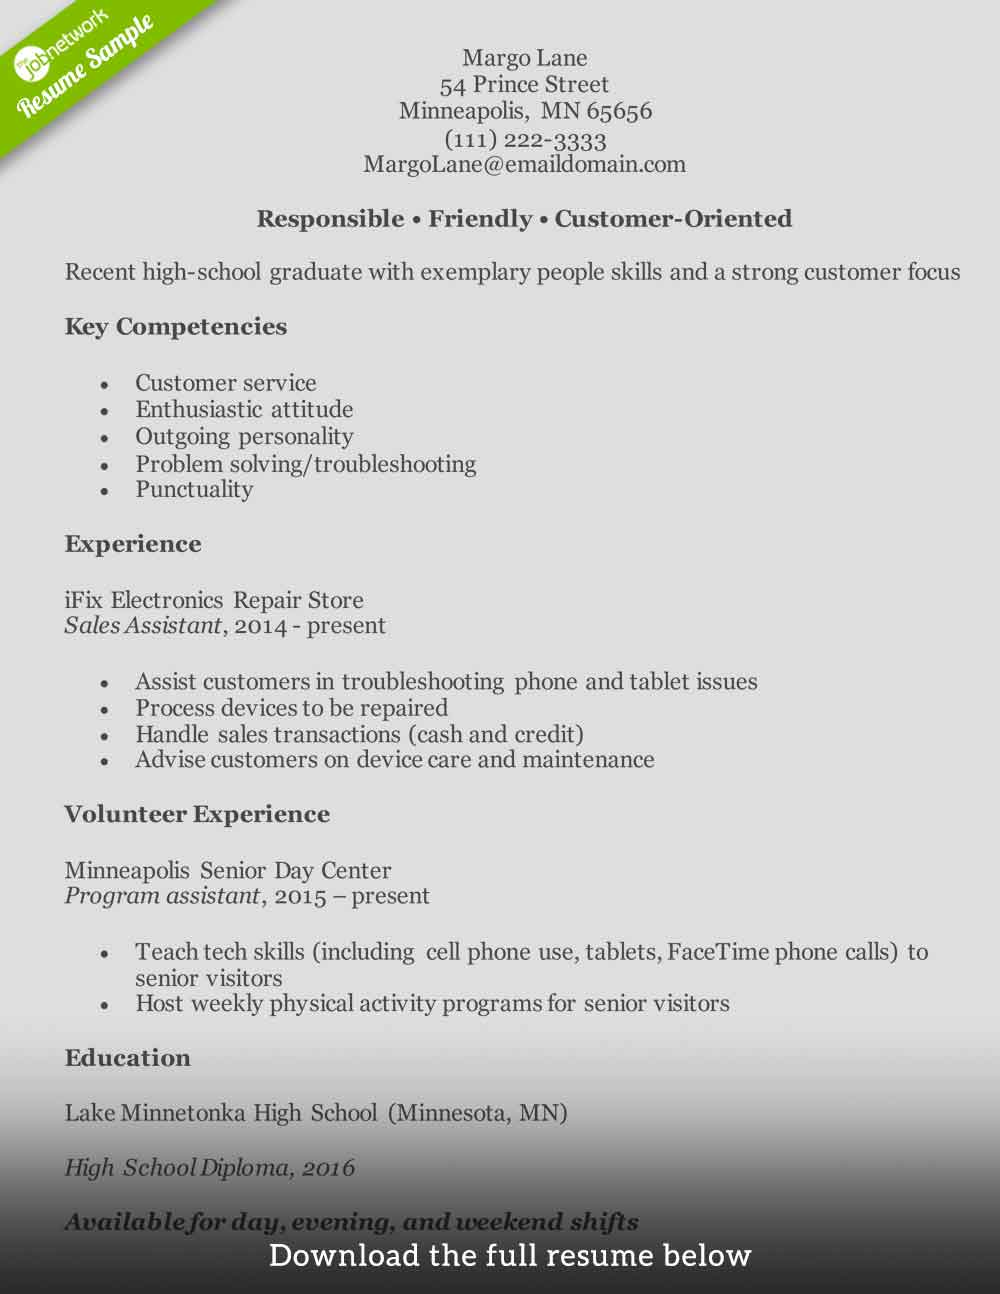 customer service resume entry level1 - Customer Service Resume